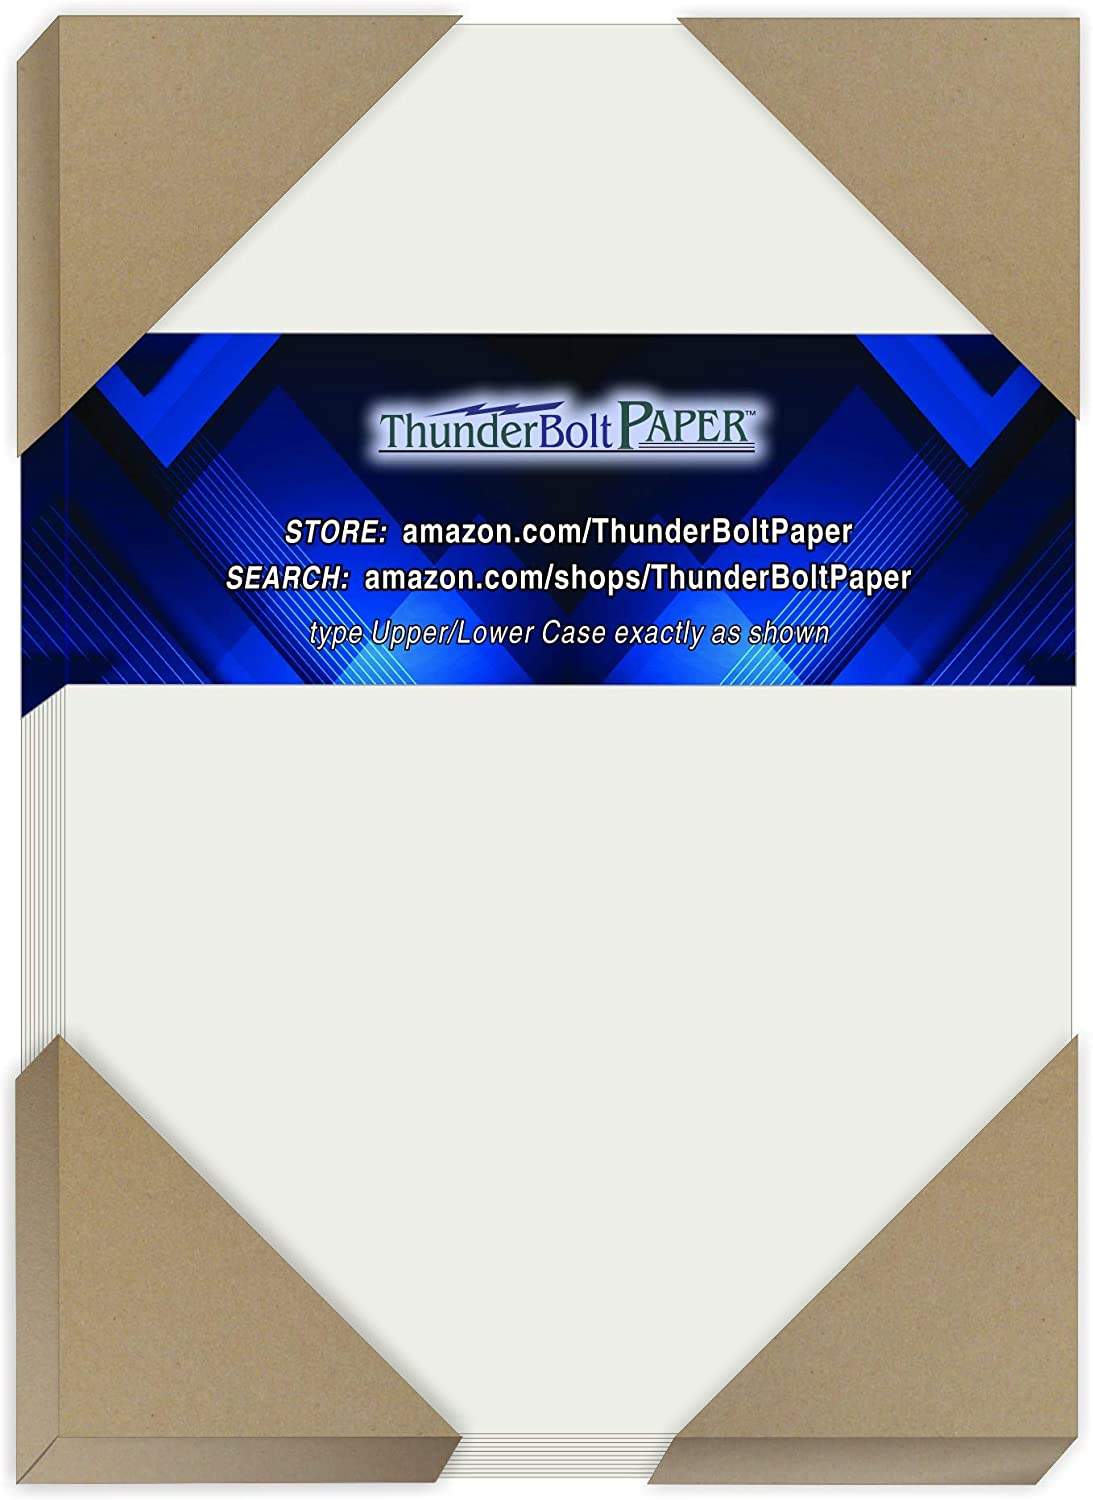 100 Soft Off-White Translucent 17# Thin Sheets - 4.5 X 6.25 Inches Craft|Invitation Card Size - 17 lb/pound Light Weight Fine Quality Paper - Tracing, Fun or Formal Use - Not a Clear Transparent